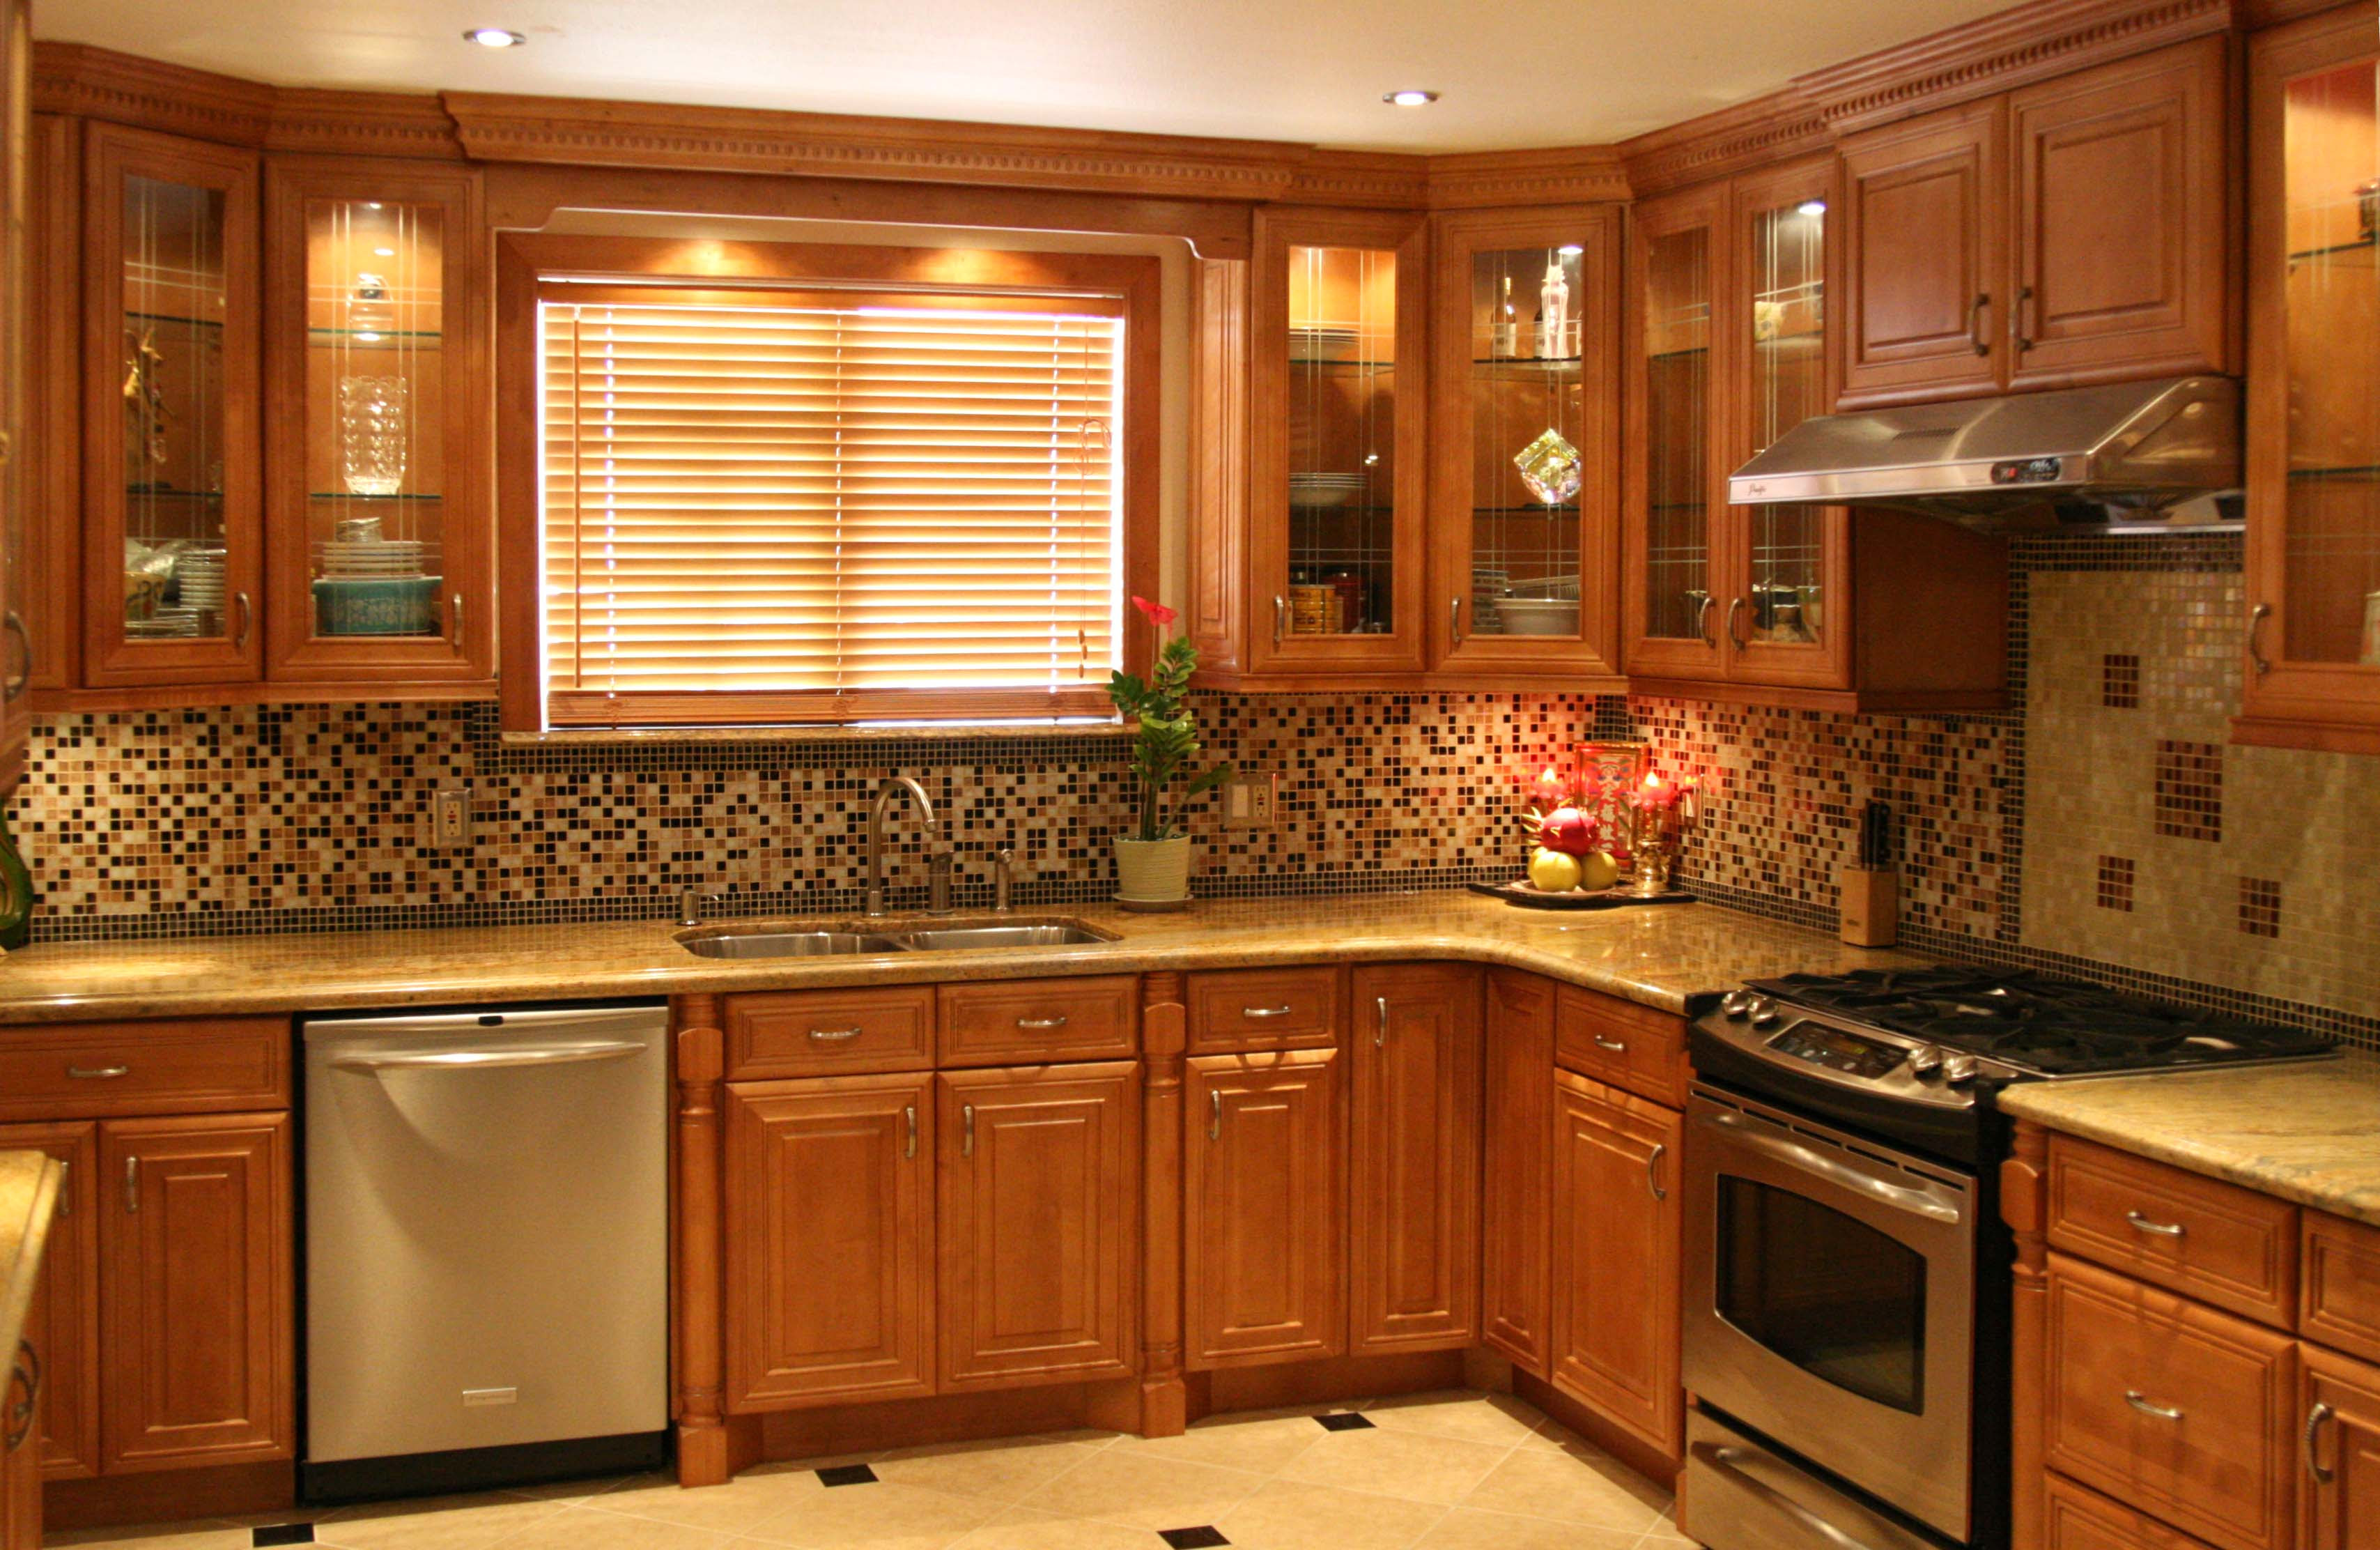 Solid Wood vs. Laminate Kitchen Cabinets | Cabinetry ...